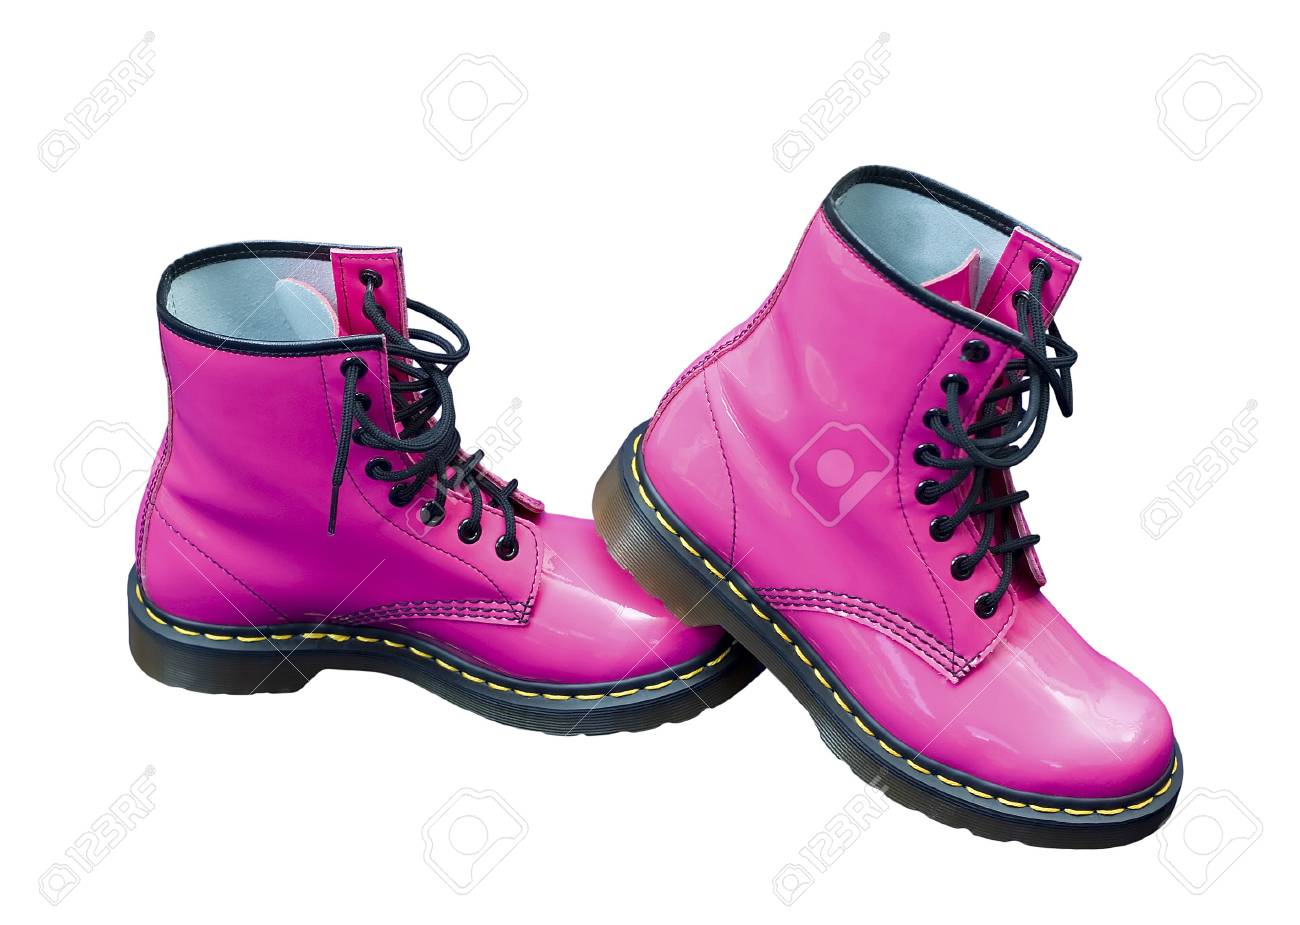 Hot Pink Protective Safety Boots On An